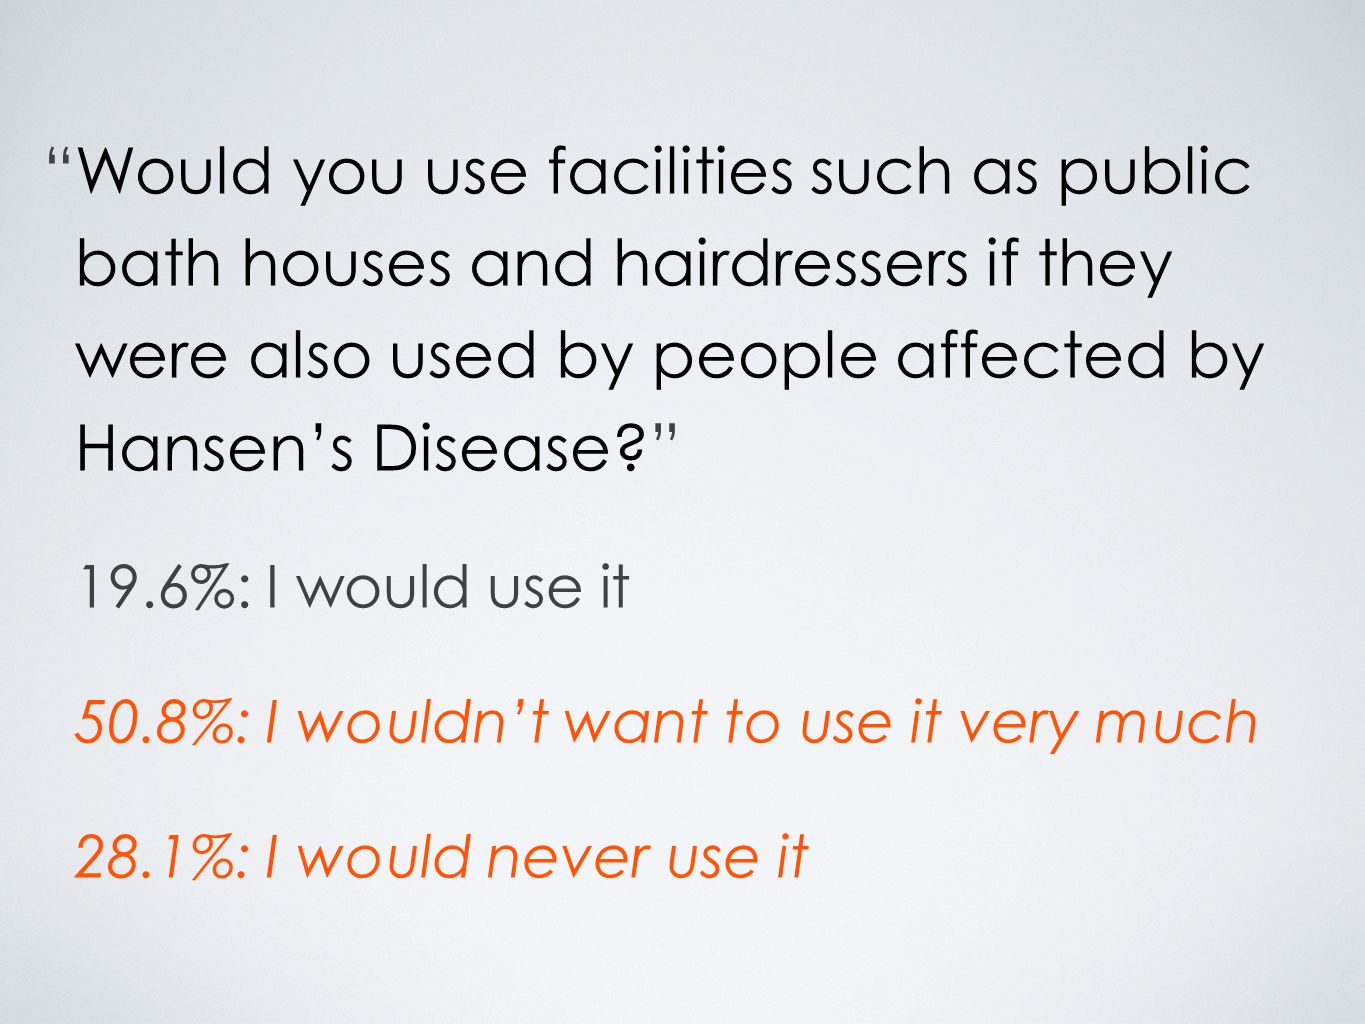 Would you use facilities such as public bath houses and hairdressers if they were also used by people affected by Hansen's Disease 19.6%: I would use it 50.8%: I wouldn't want to use it very much 28.1%: I would never use it